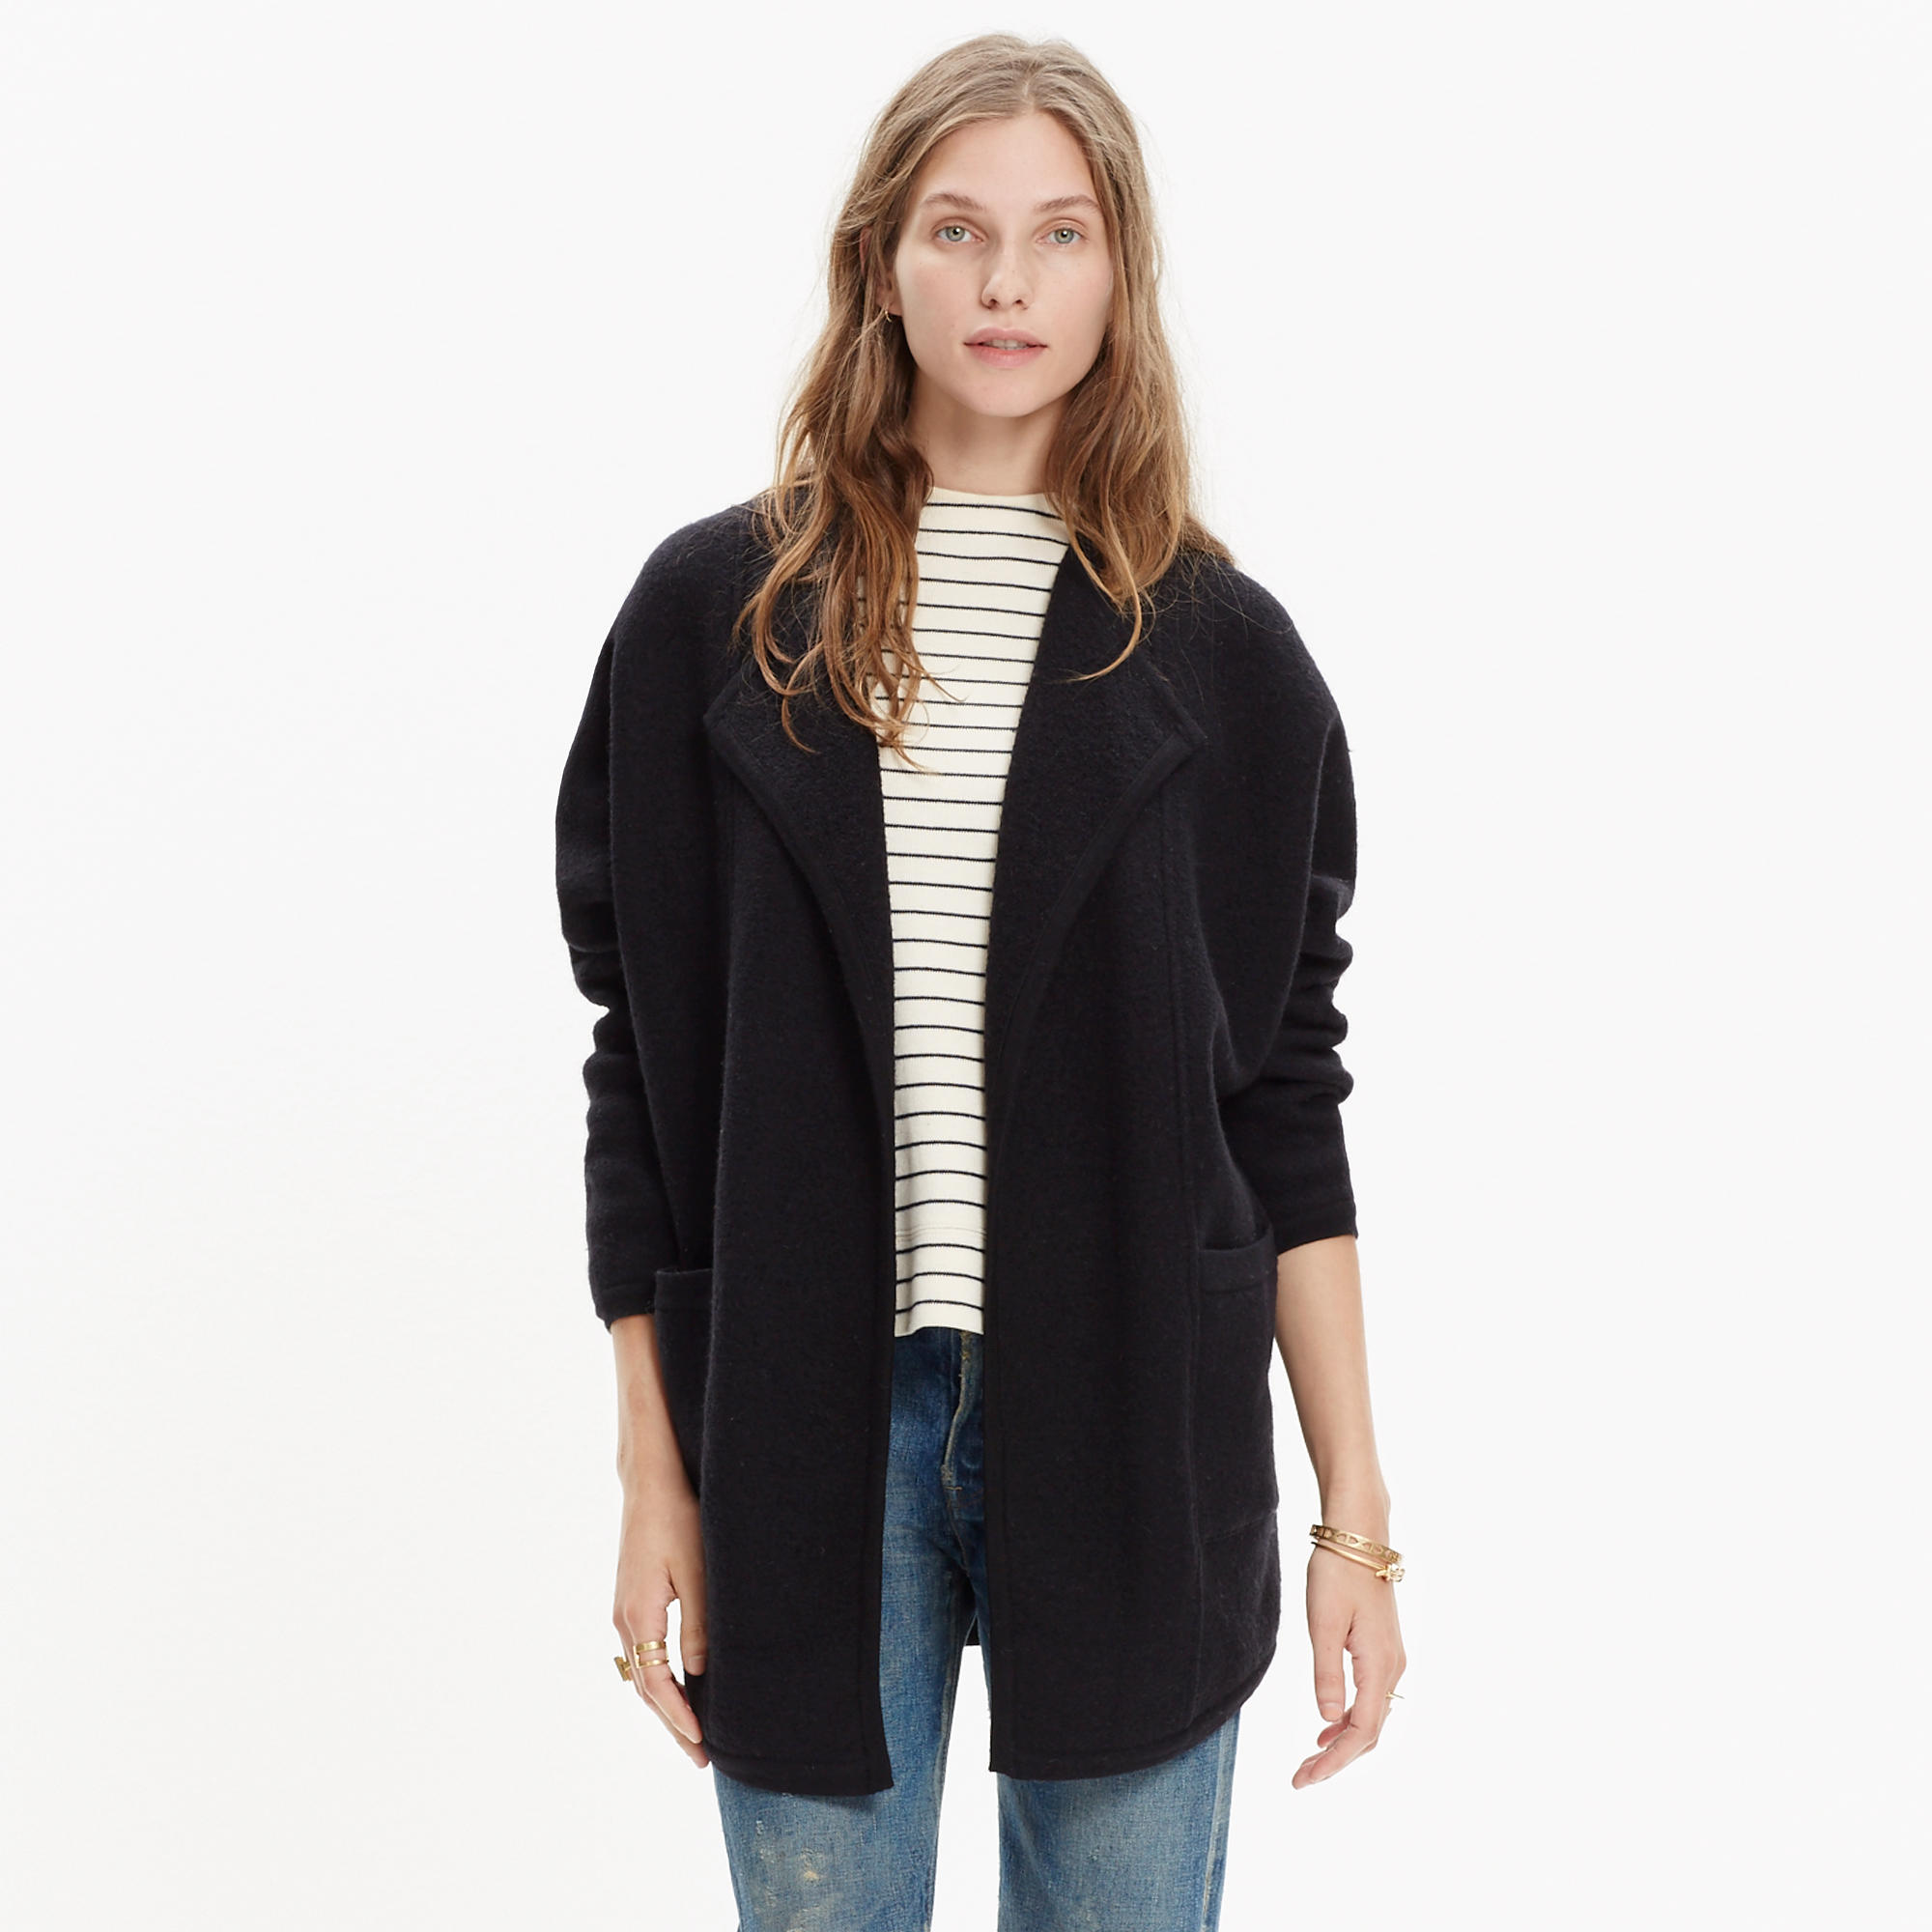 Oversized Sweater-Jacket : cardigans & sweater-jackets | Madewell